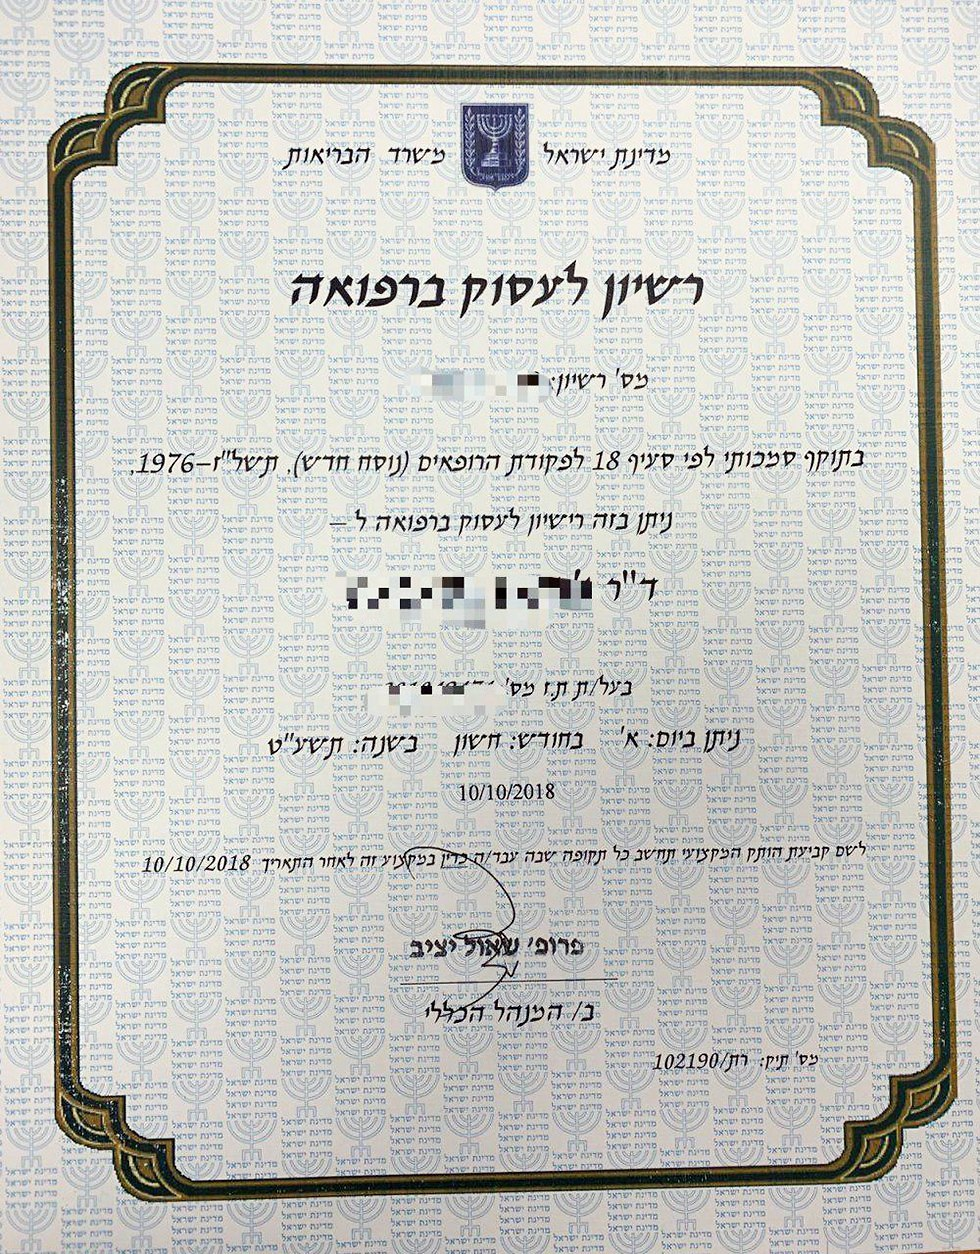 Israeli medical license given to one of the suspects (Photo: Israel Police)